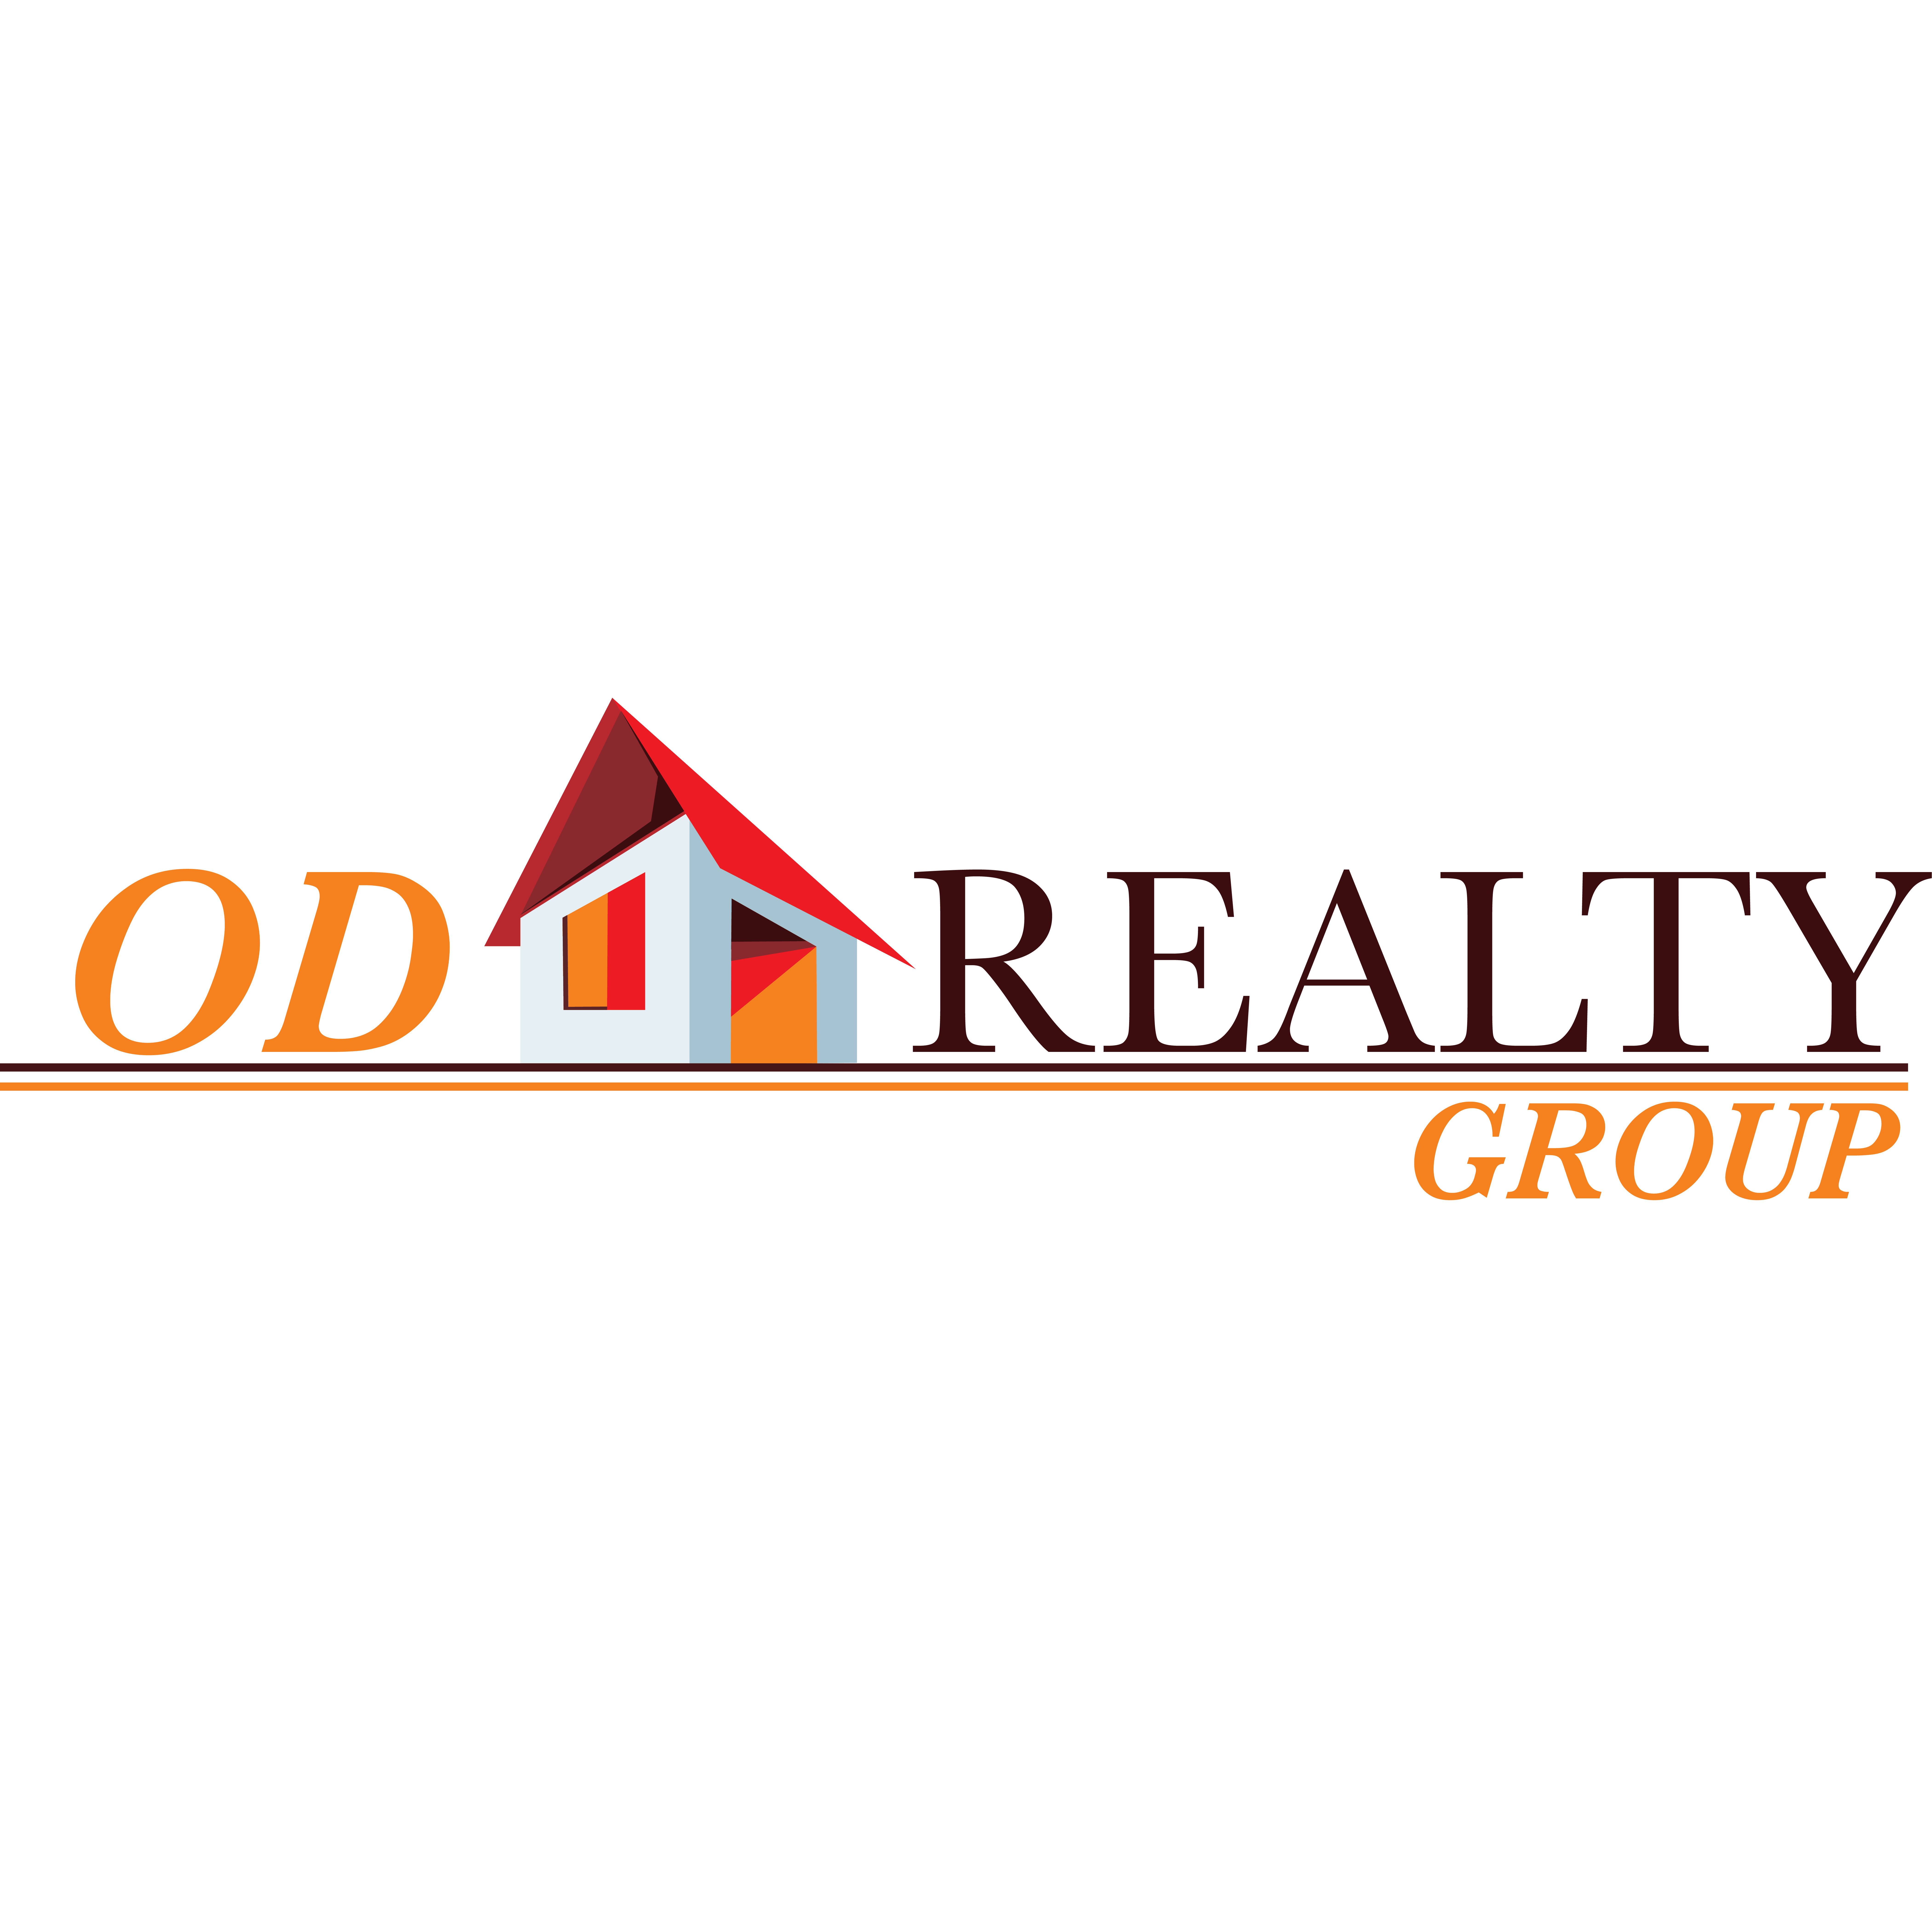 OD Realty Group Corp